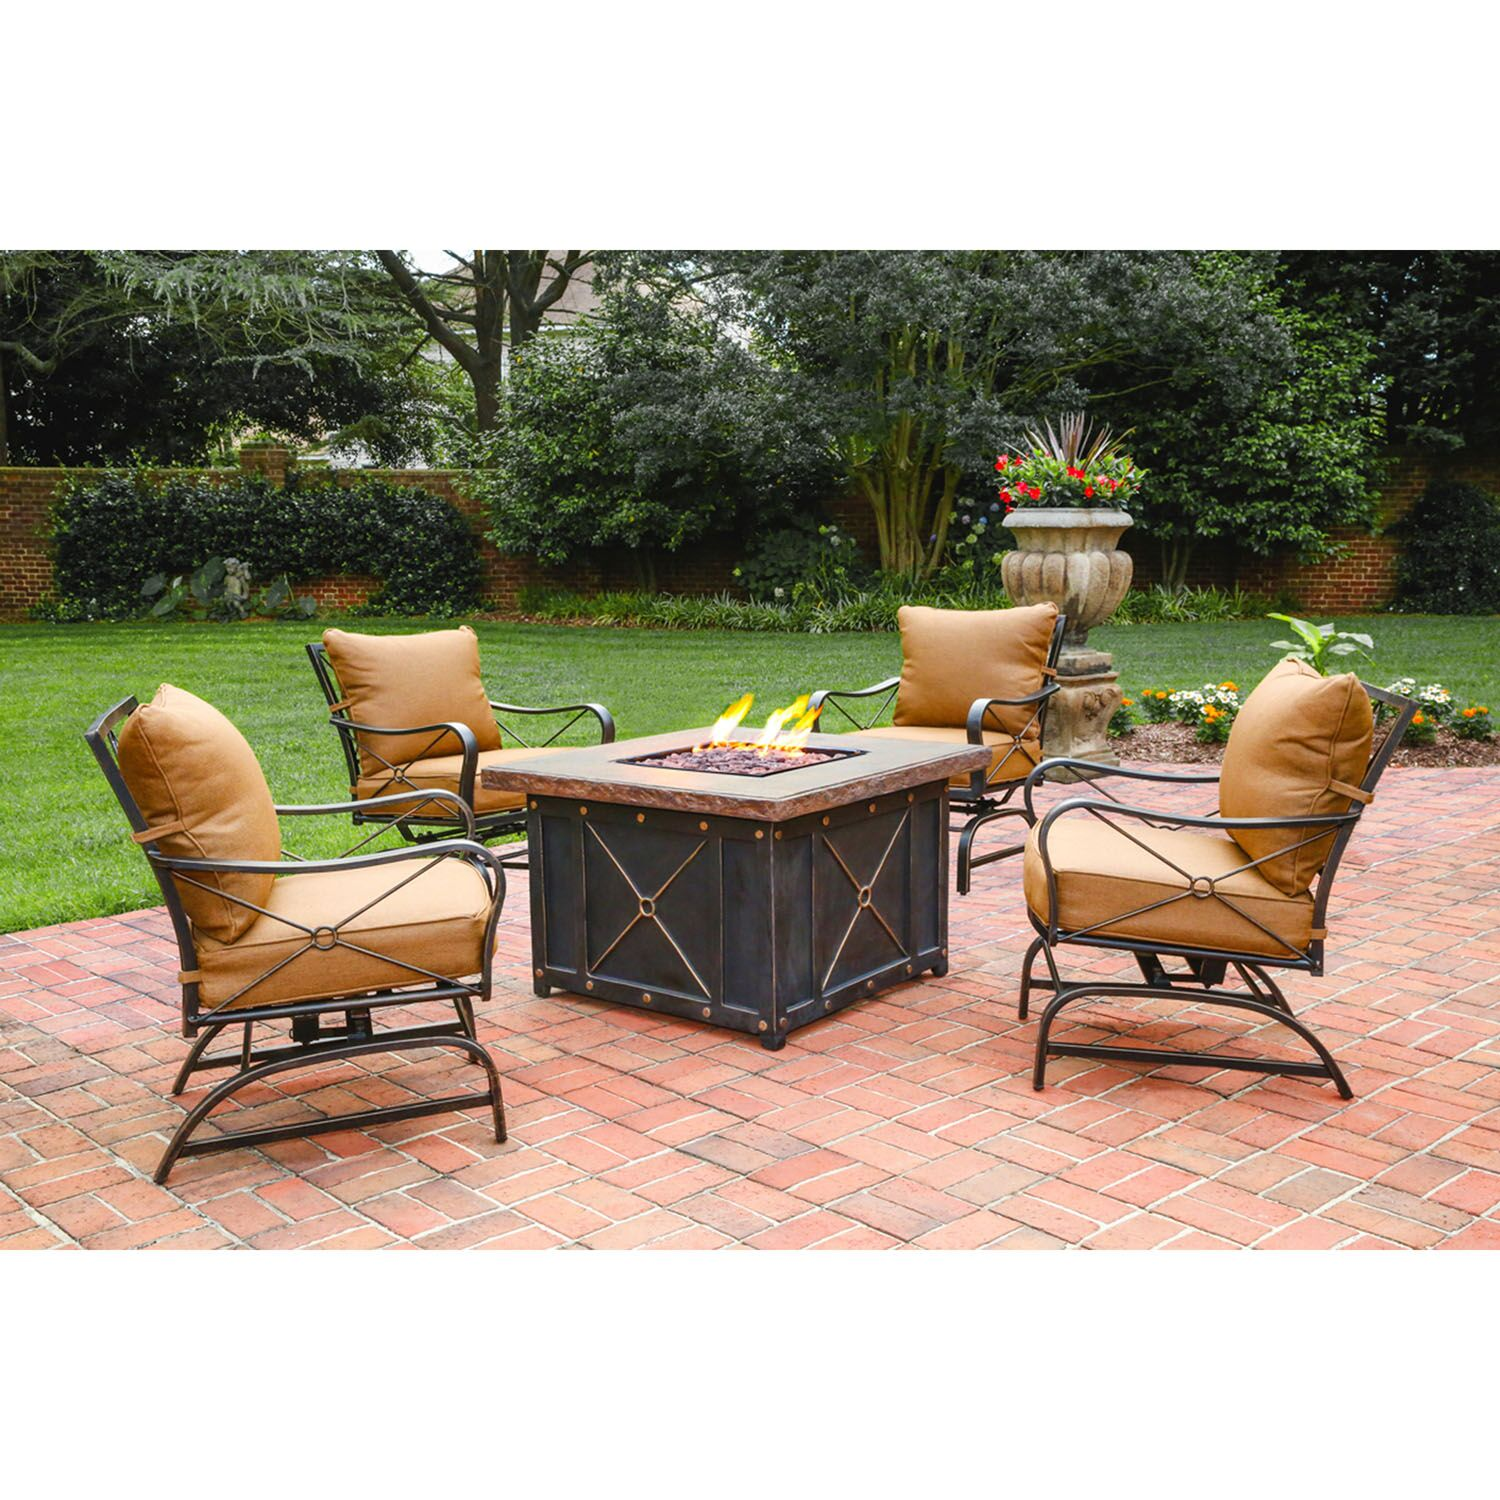 Debbie 5 Piece Conversation Set 2 Person Seating Group with Cushions